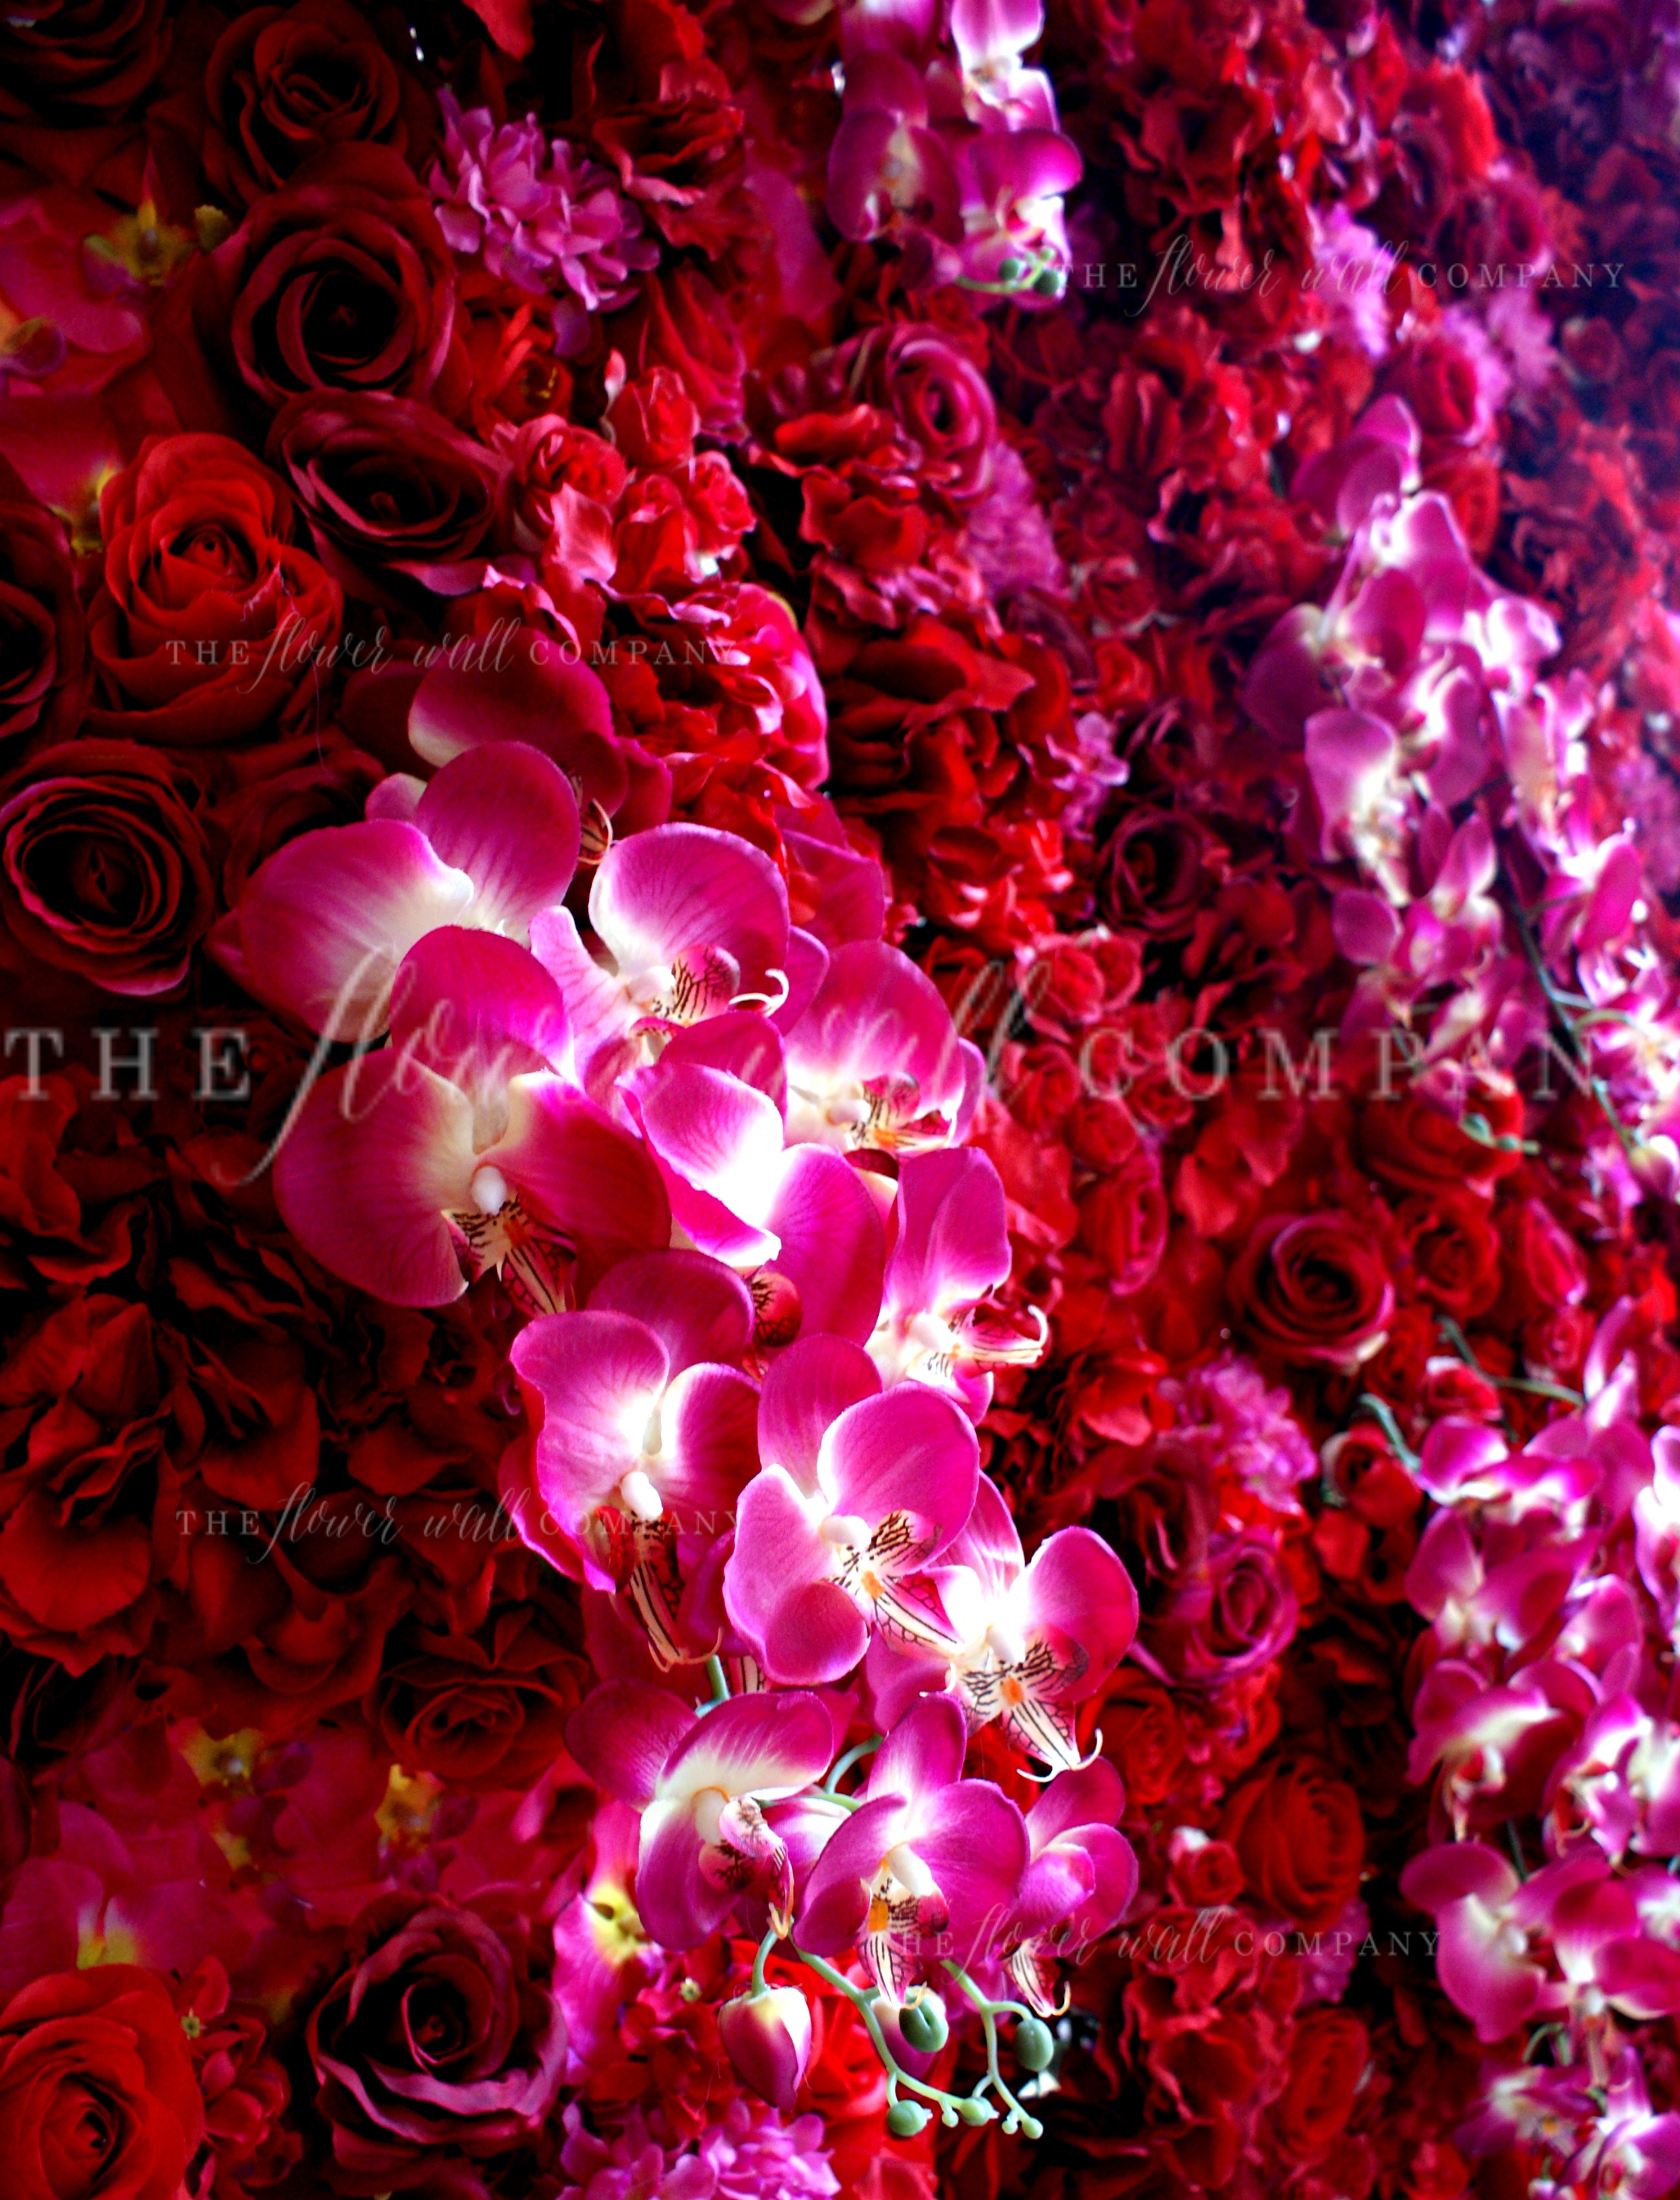 The flower wall company creating reusable easy to construct and miss ruby flower wall dhlflorist Gallery